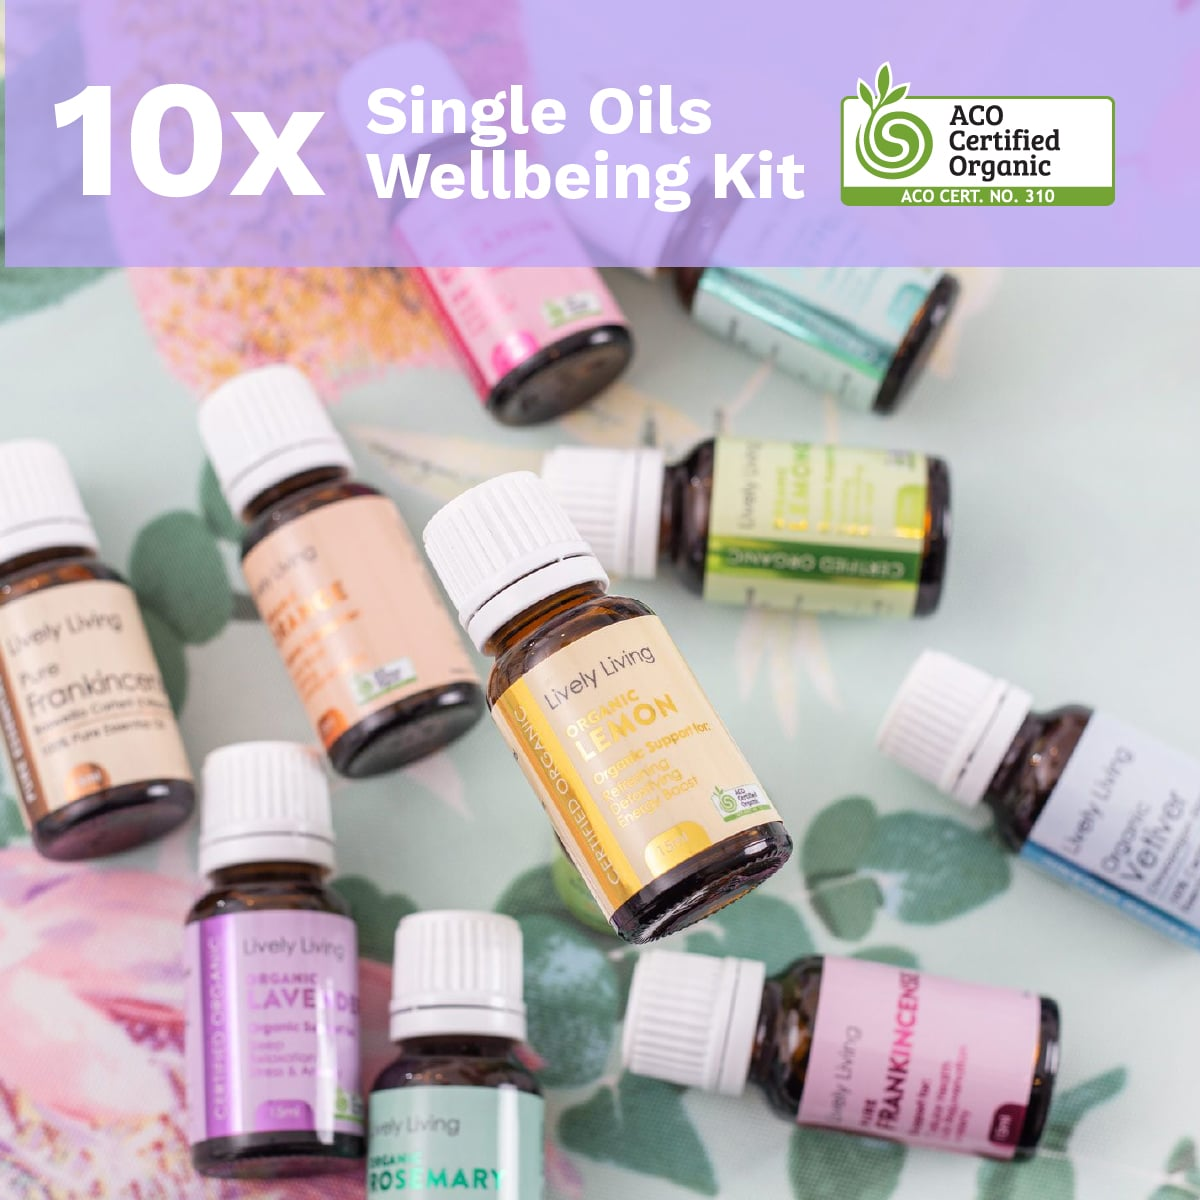 10x SINGLE OILS WELLBEING KIT